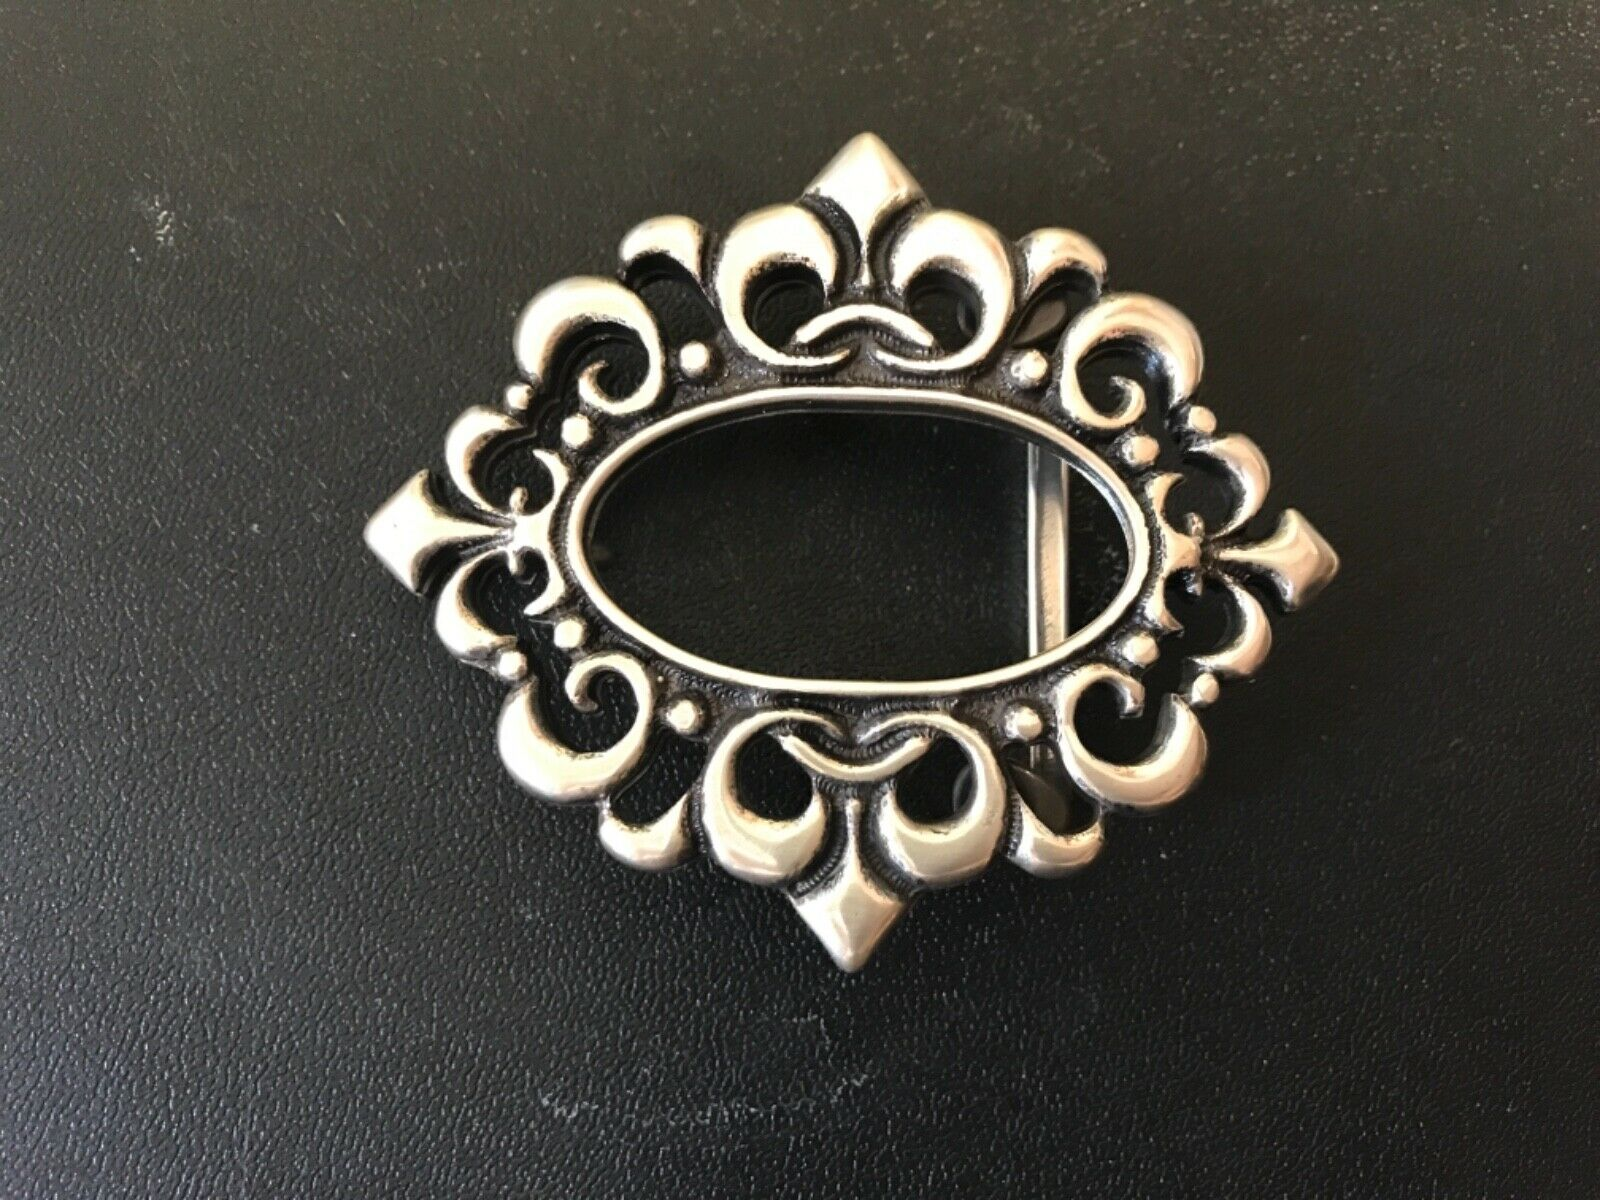 Gothic,Baroque,medieval ,Viking , Saxon belt buckle.Made in Italy.Silver plaited